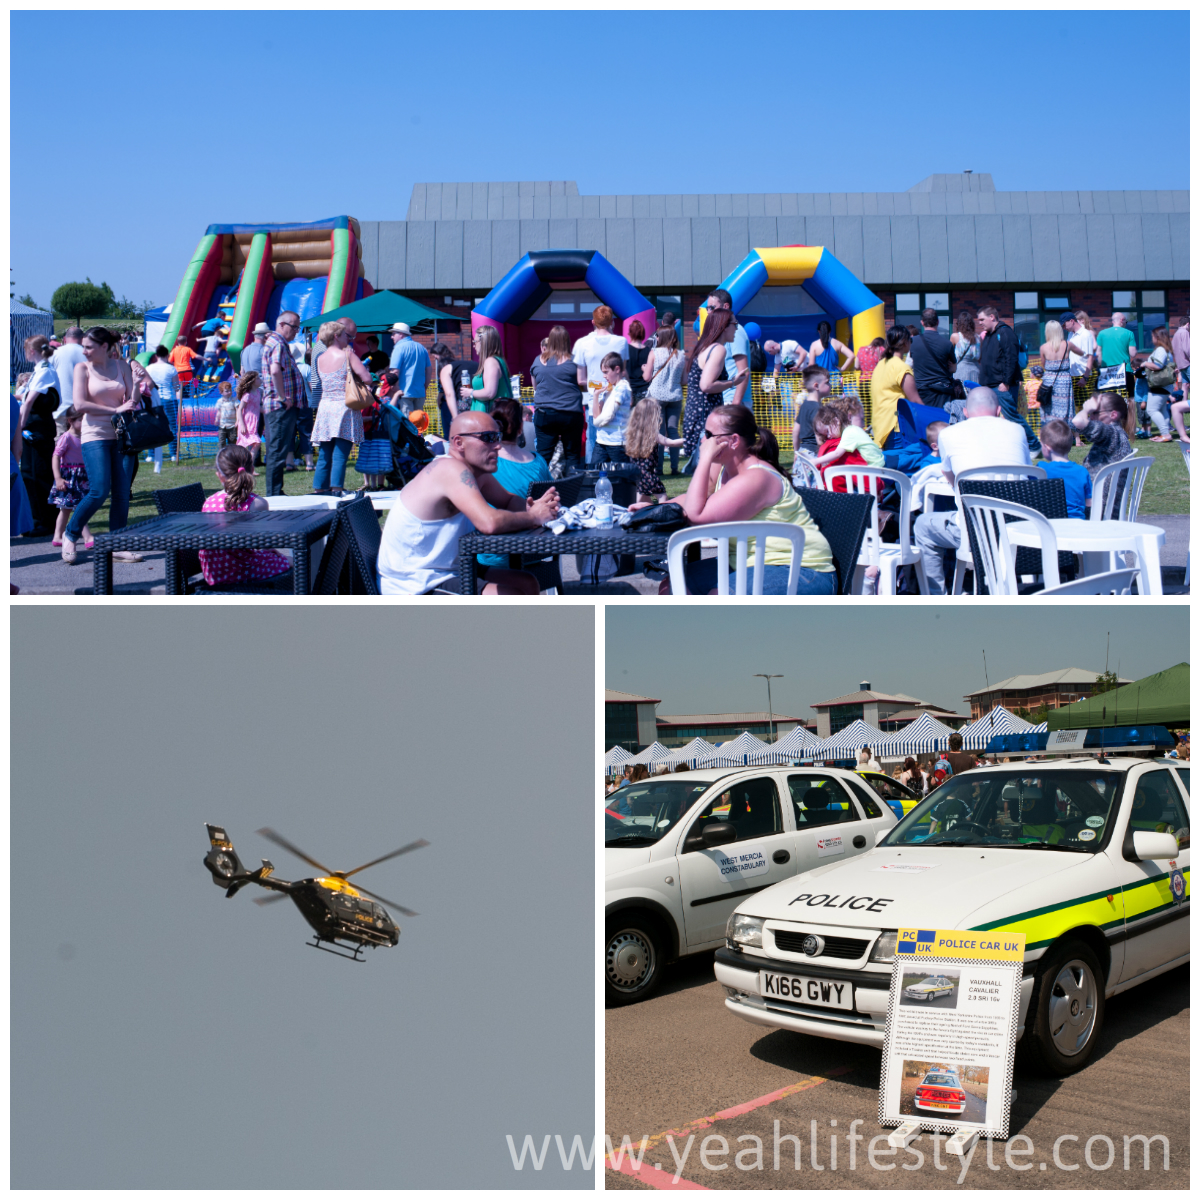 Staffordshire-Police-Open-Day-Stafford-Staffordshire-Event